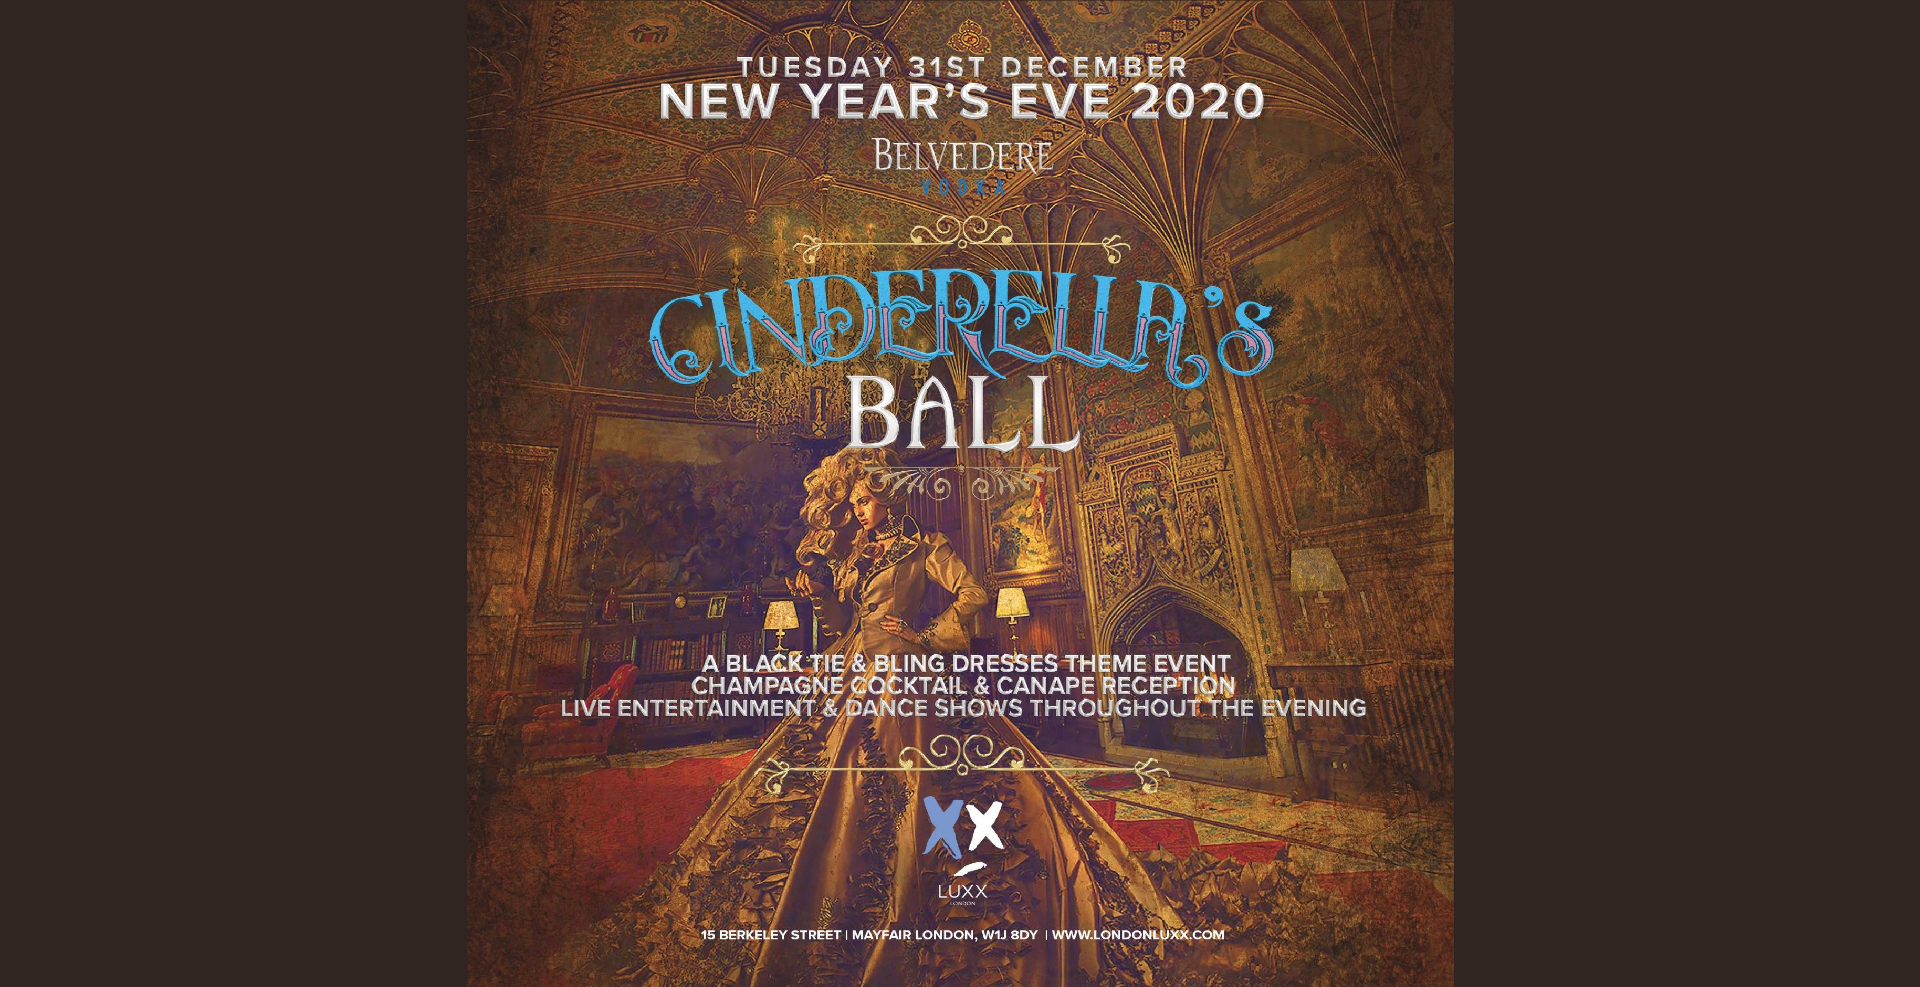 BELVEDERE New Year's Eve 2020 Presents CINDERELLA'S BALL at Luxx Club London  (Mayfair NightClub)